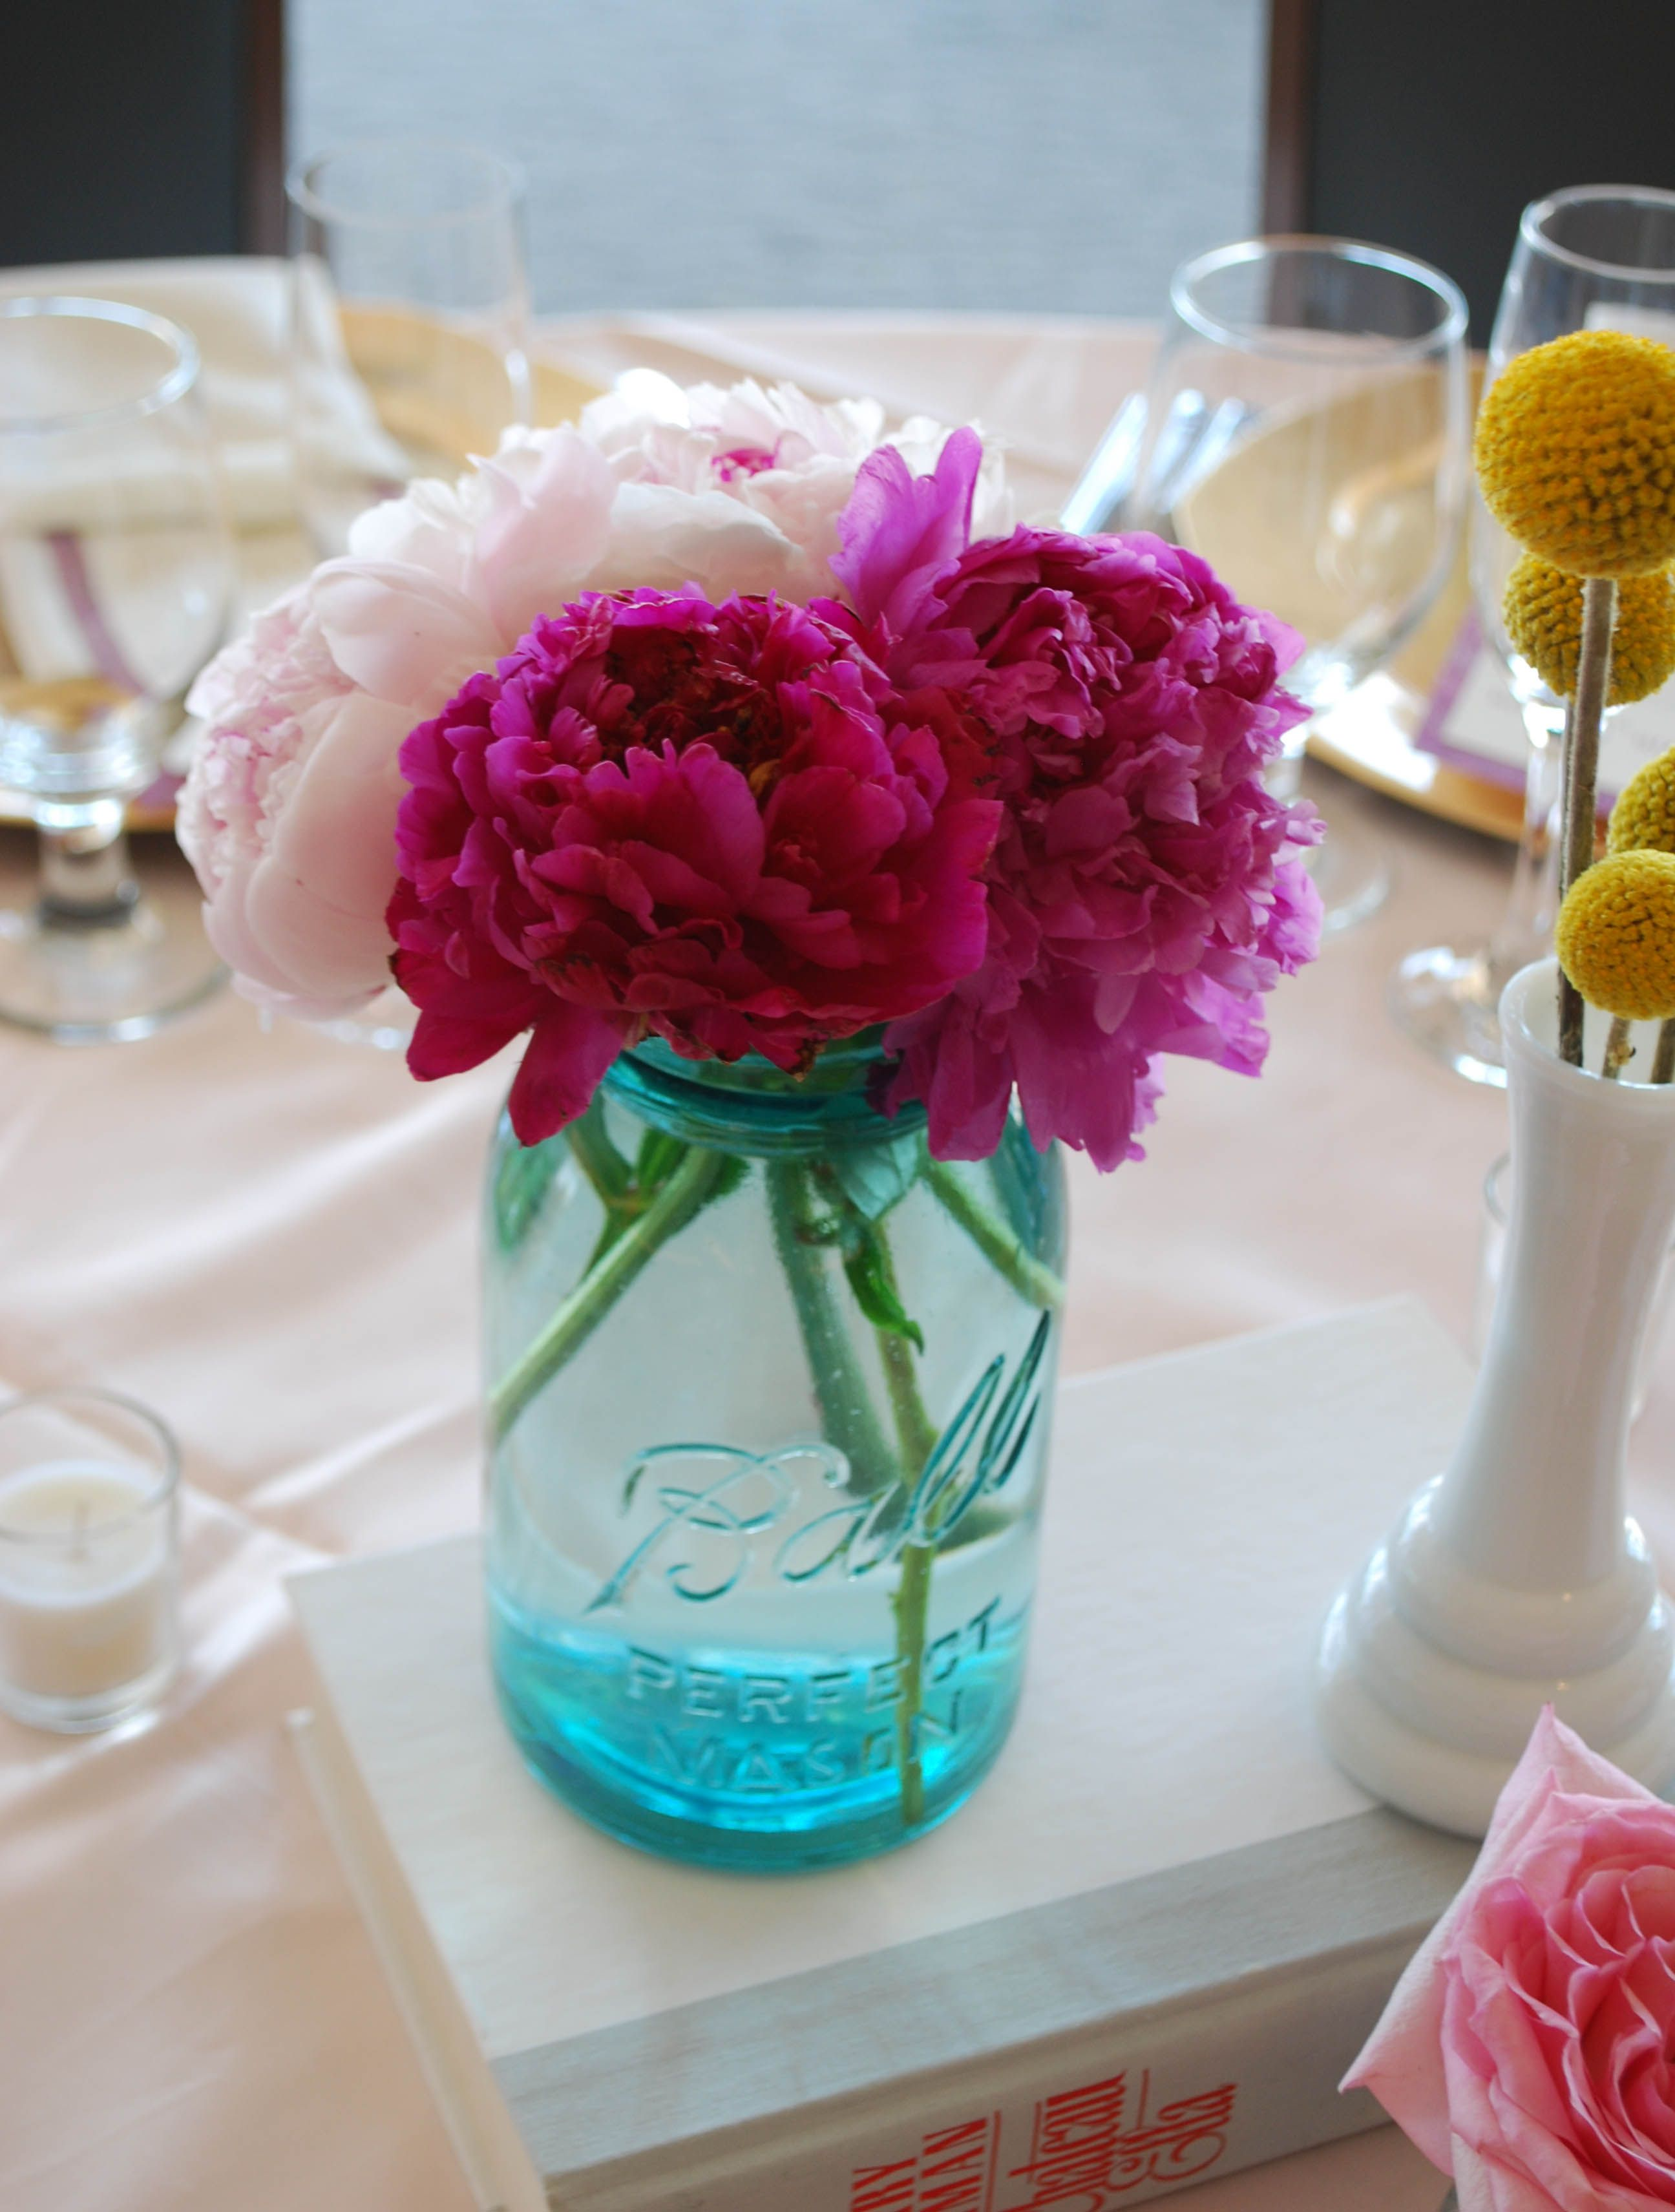 Mason jar wedding decoration ideas  mason jar and peonies centerpiece  Ideas  Pinterest  Peony